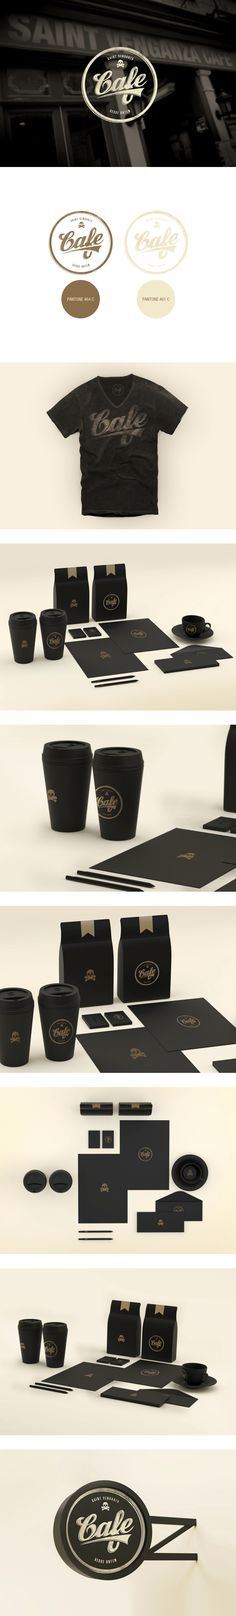 All black errthang Just plain old Old Cafe #identity #packaging #branding #marketing PD